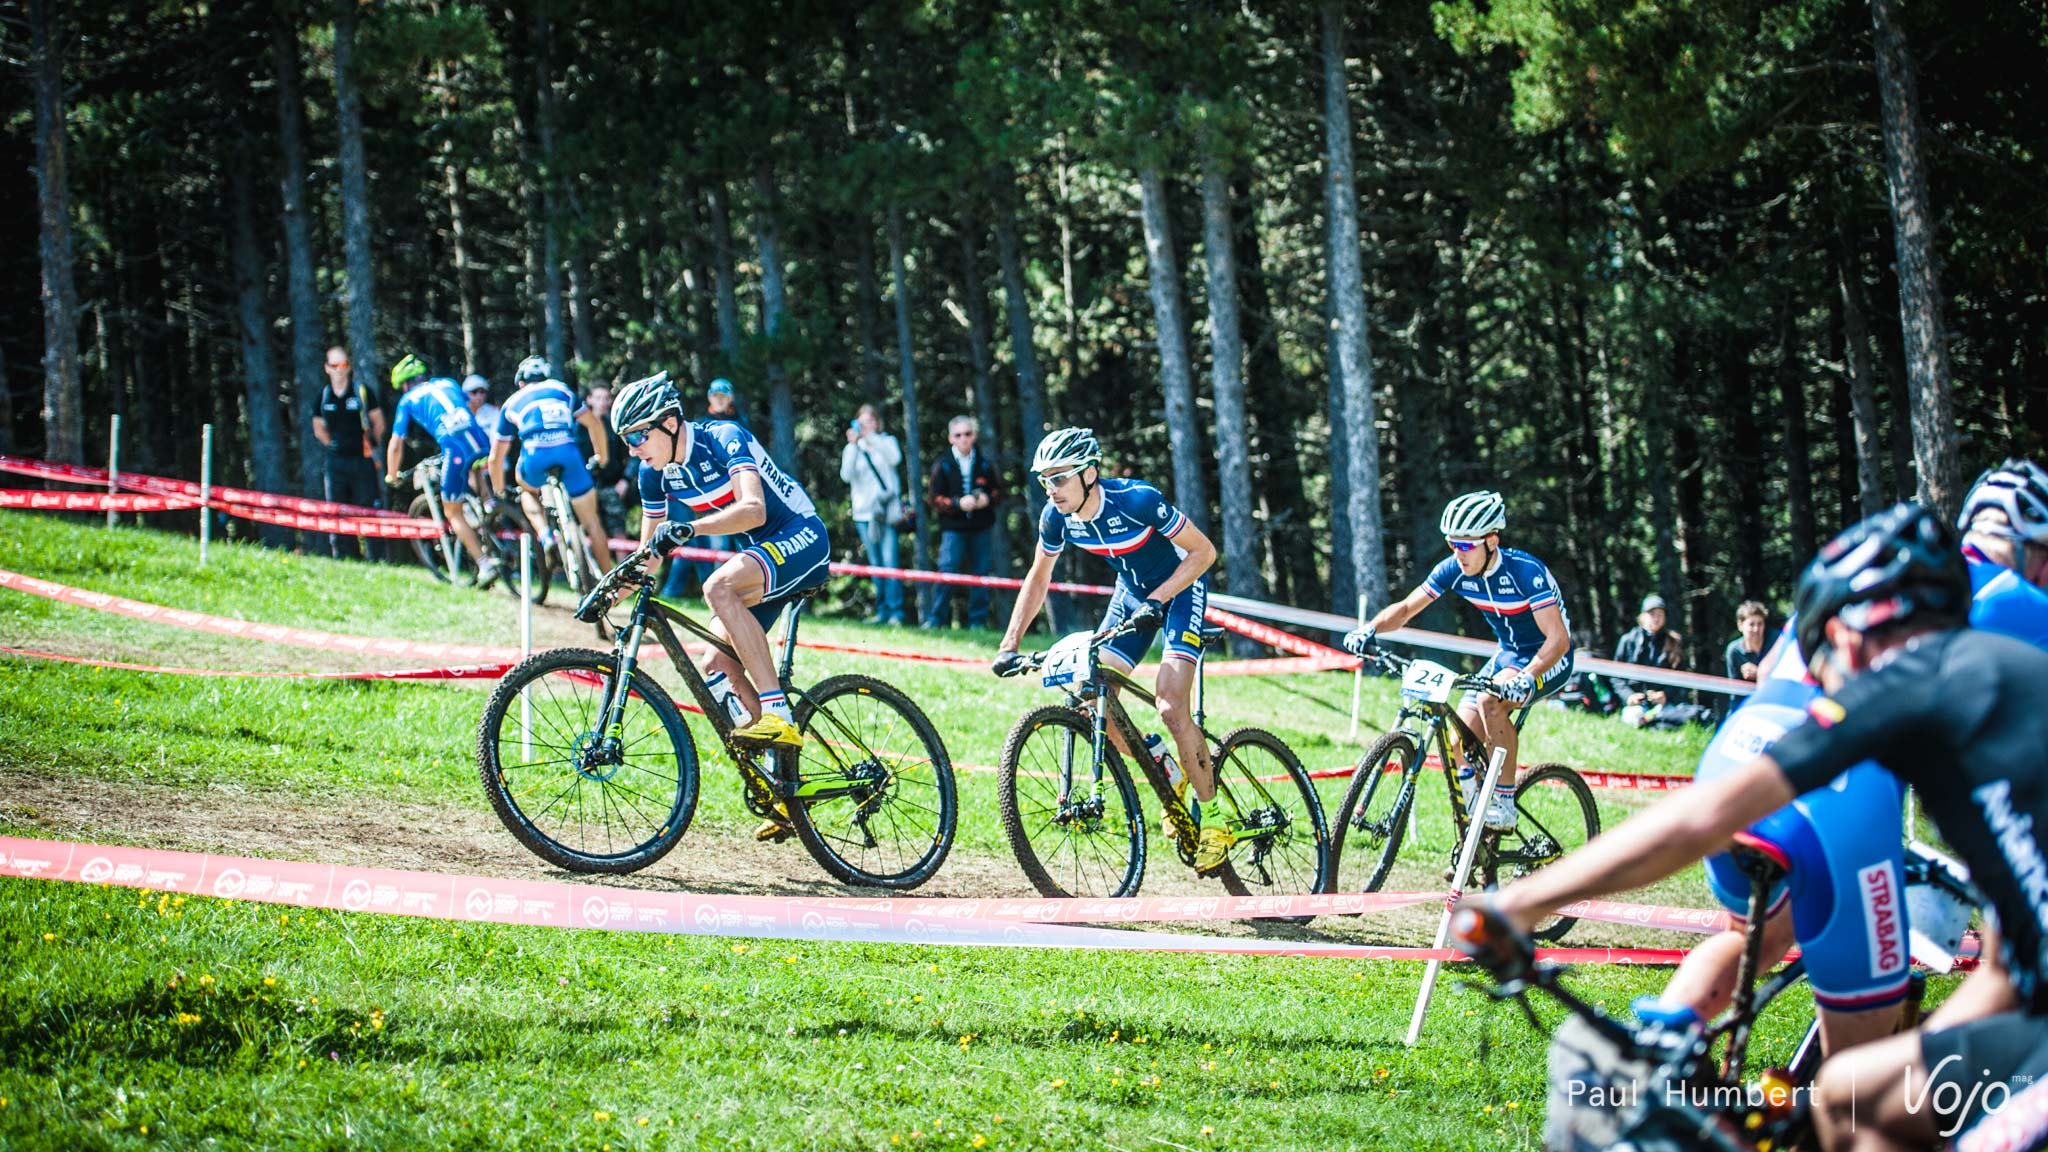 Worldchamps-2015-vojo-XCO-Dames-40